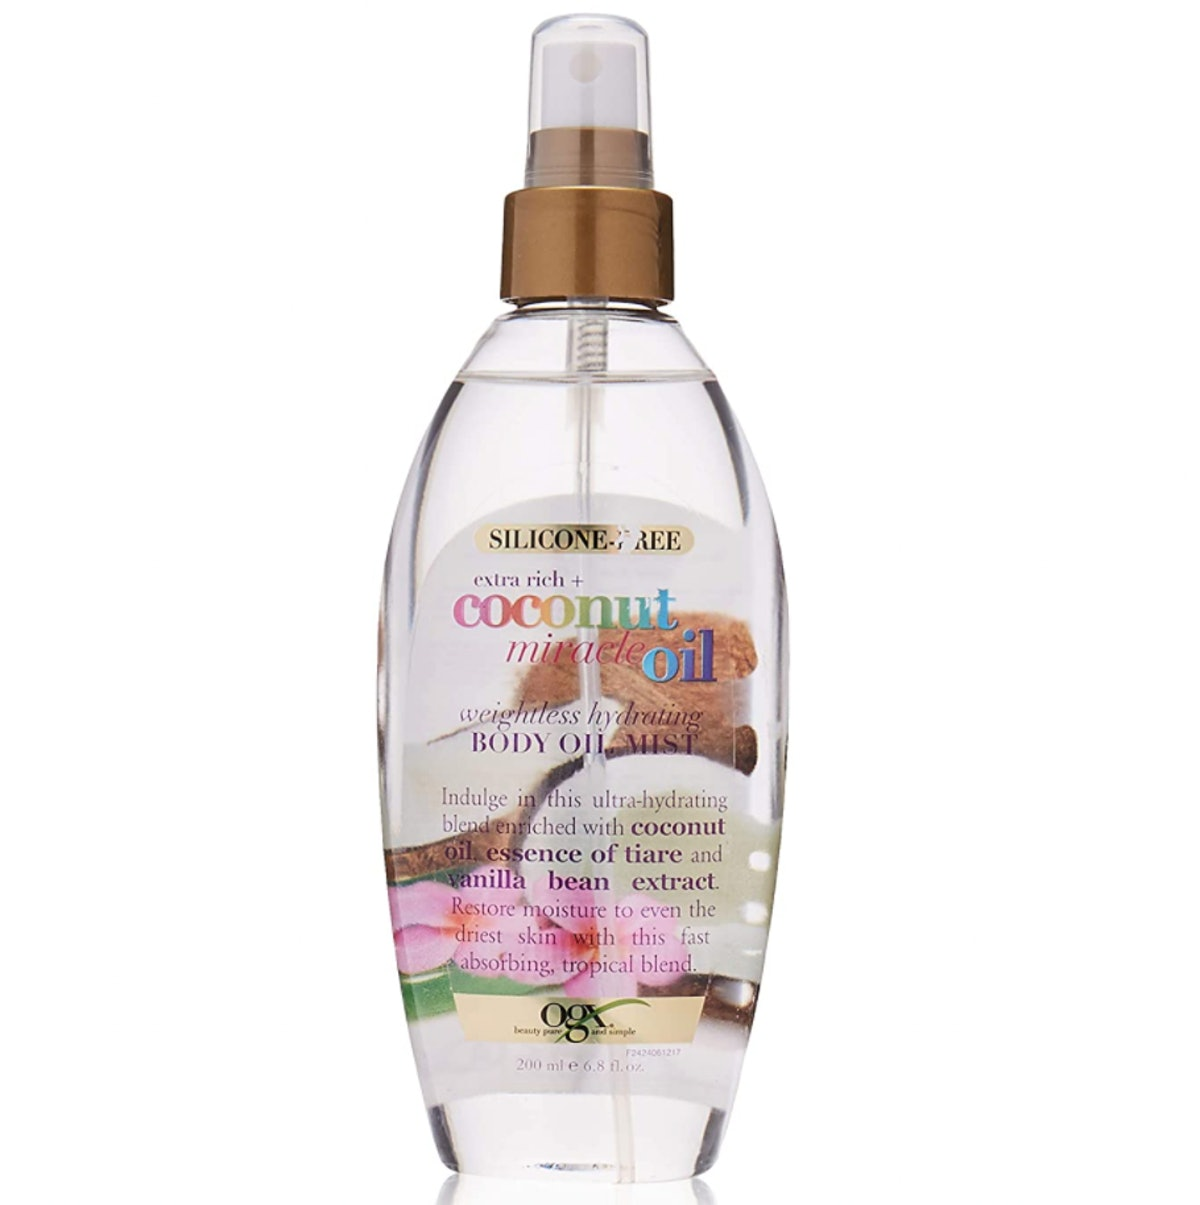 OGX Extra Rich + Coconut Miracle Oil Weightless Hydrating Body Oil Mist